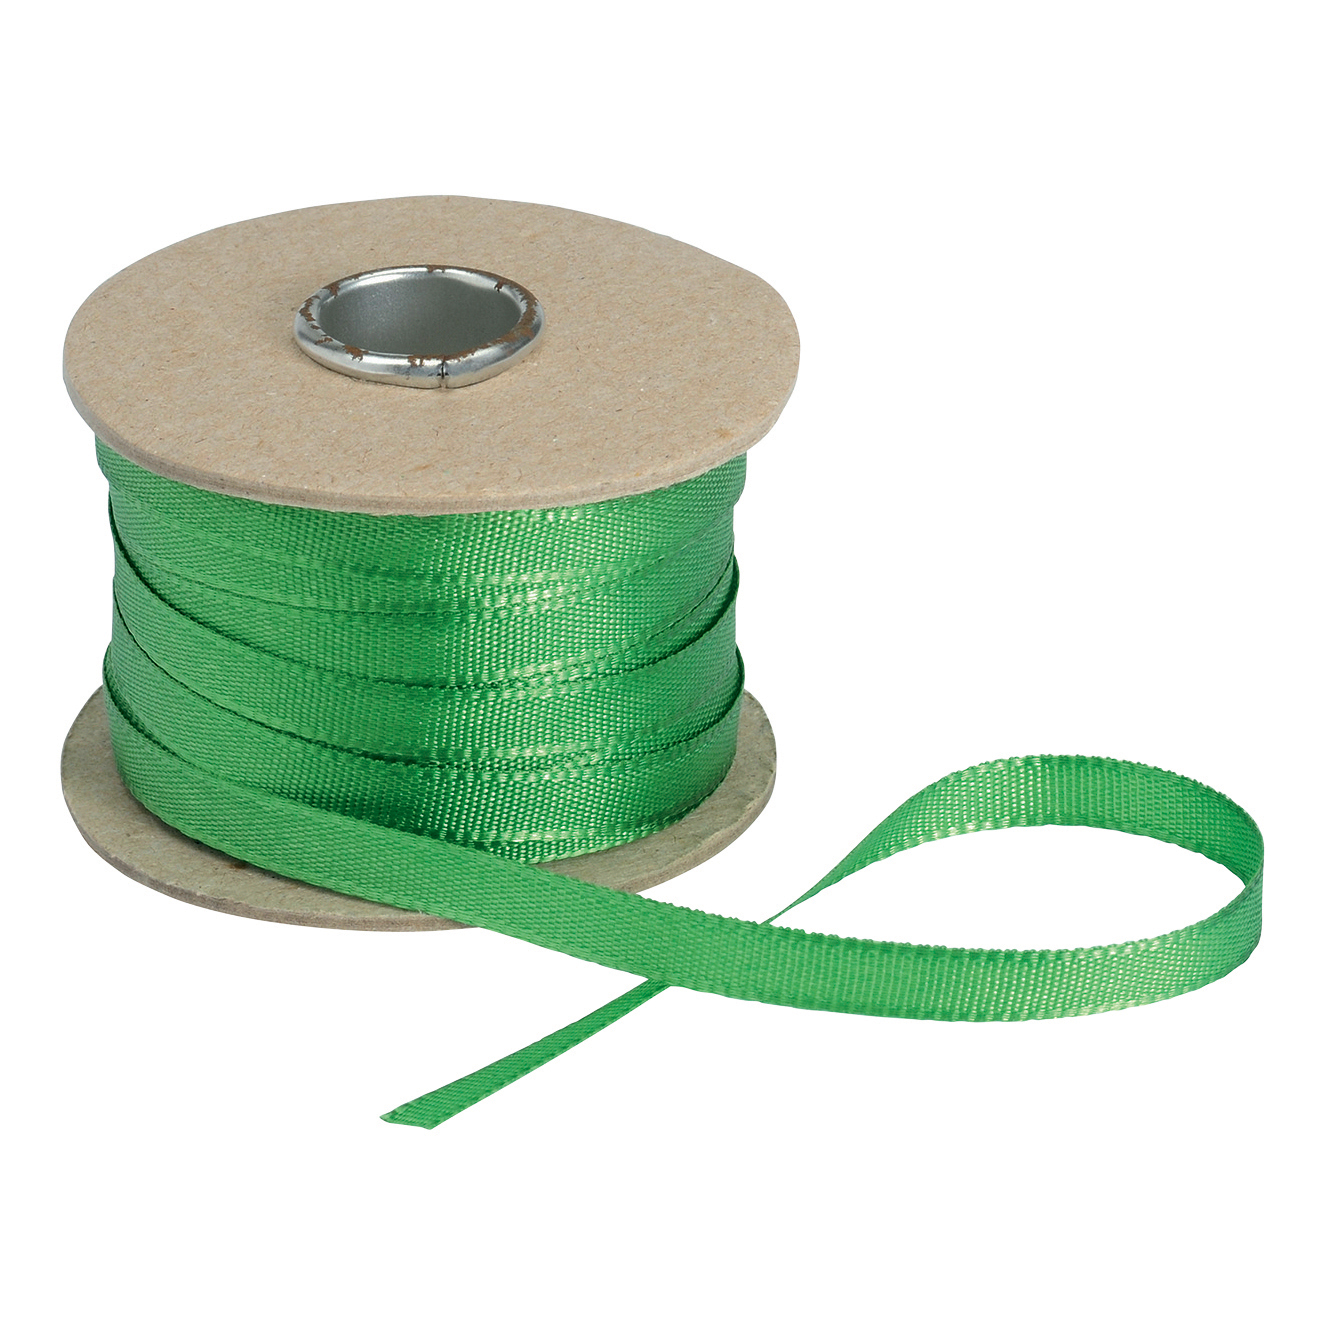 Legal Tape Reel Silk 6mmx50m Green Code R6060